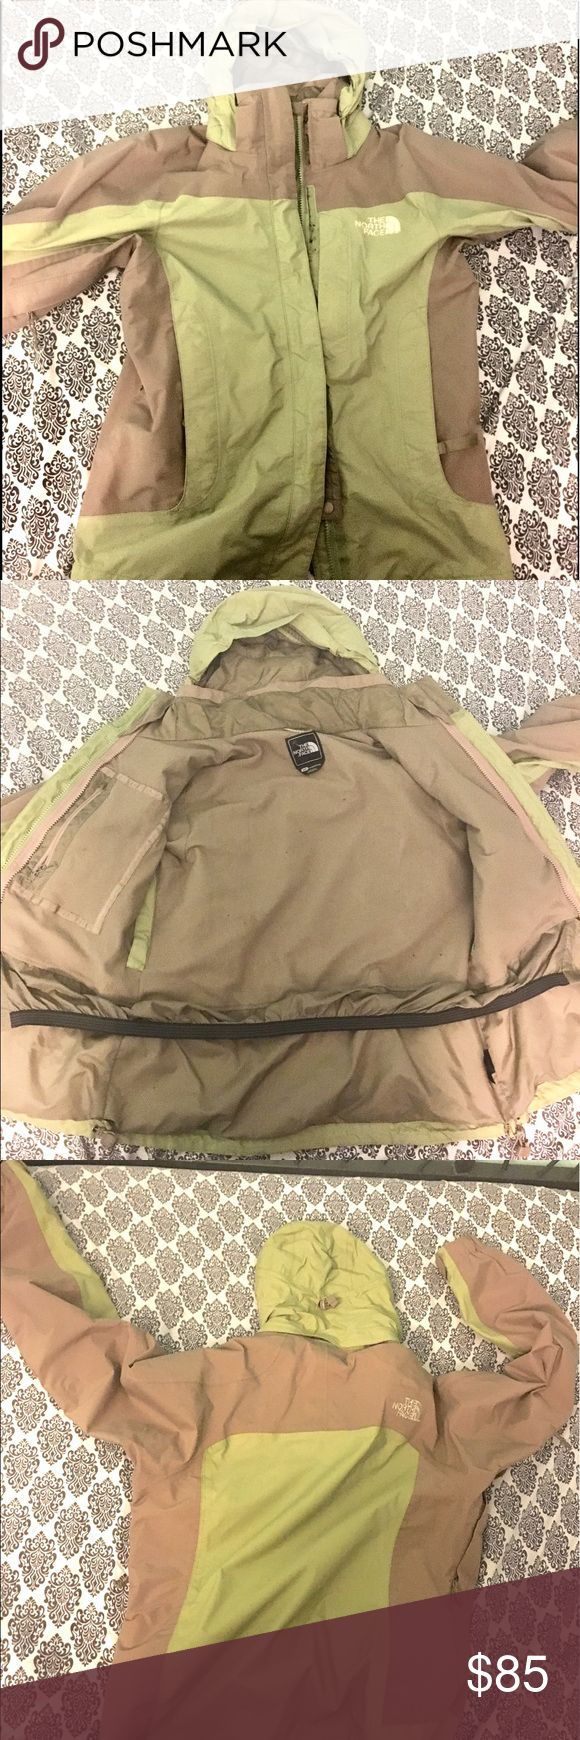 The north face waterproof ski jacket Womens THE NORTH FACE VARIUS GUIDE Waterproof HYVENT PARKA Ski Jacket  hardly used one small red scuff on sleeve most likely washable The North Face Jackets & Coats